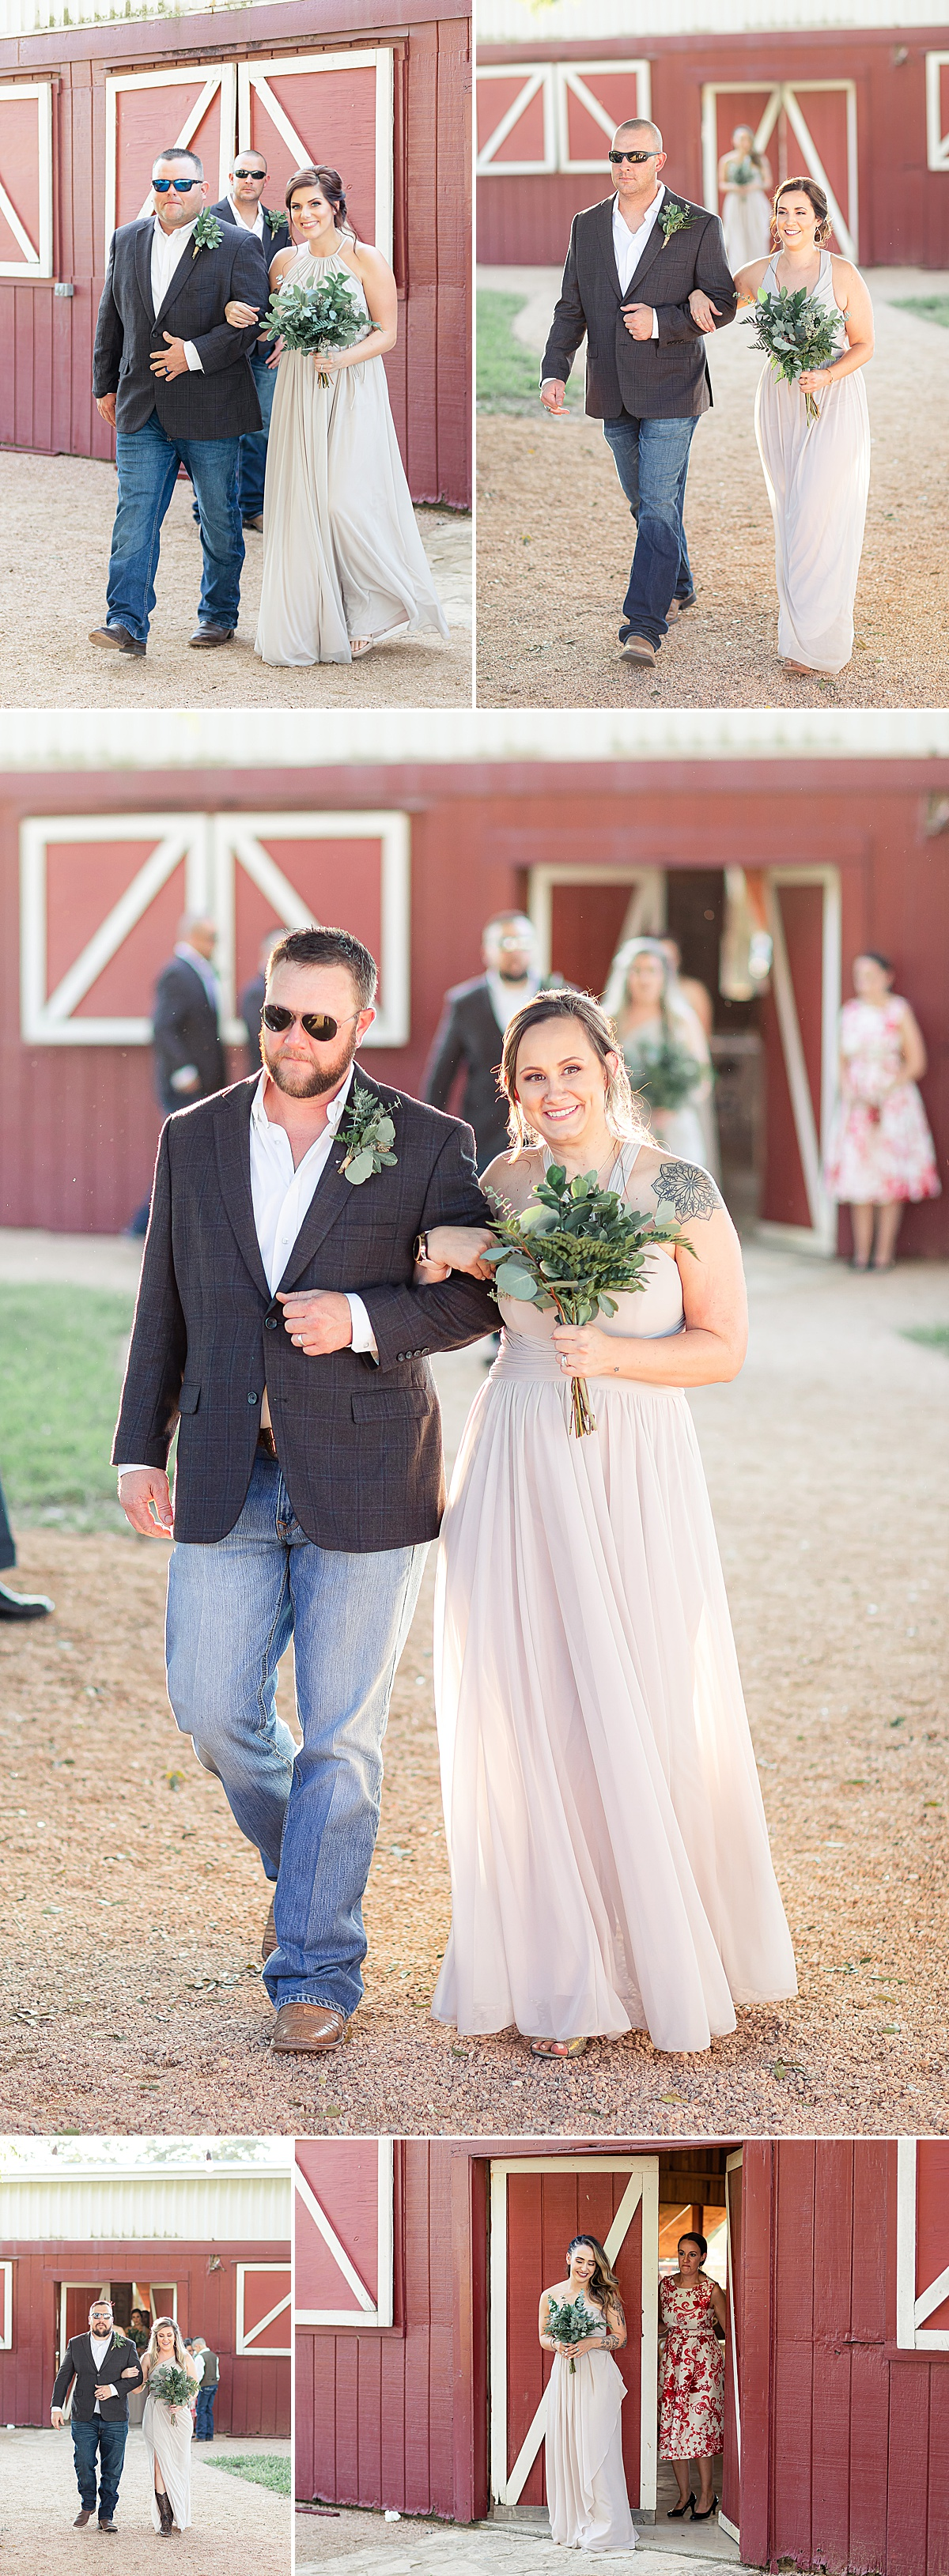 Rustic-Texas-Wedding-Hollow-Creek-Ranch-Carly-Barton-Photography_0112.jpg